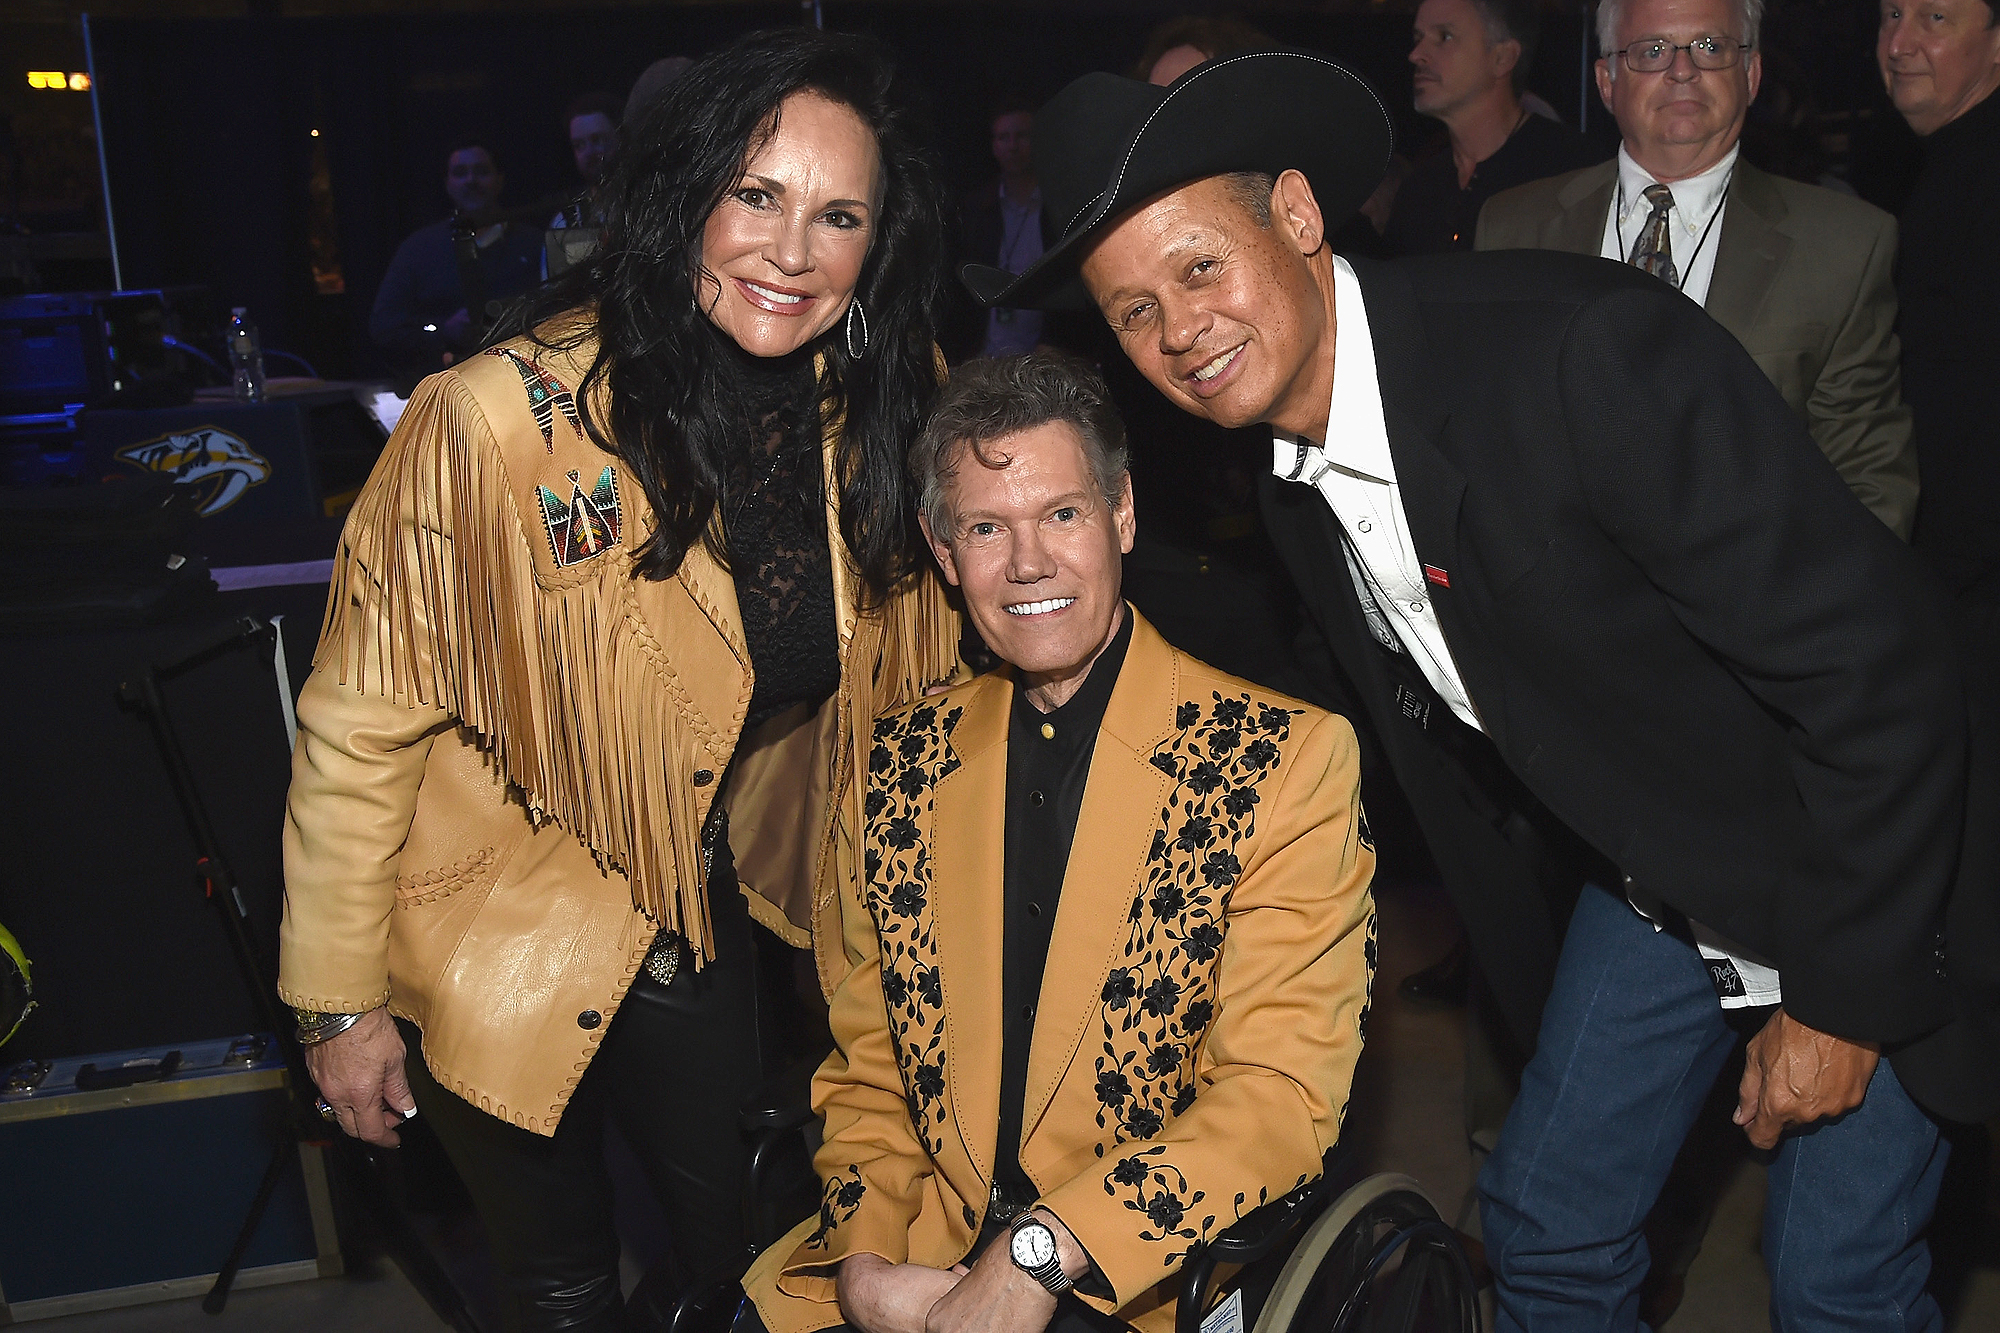 1 Night. 1 Place. 1 Time: A Heroes & Friends Tribute to Randy Travis